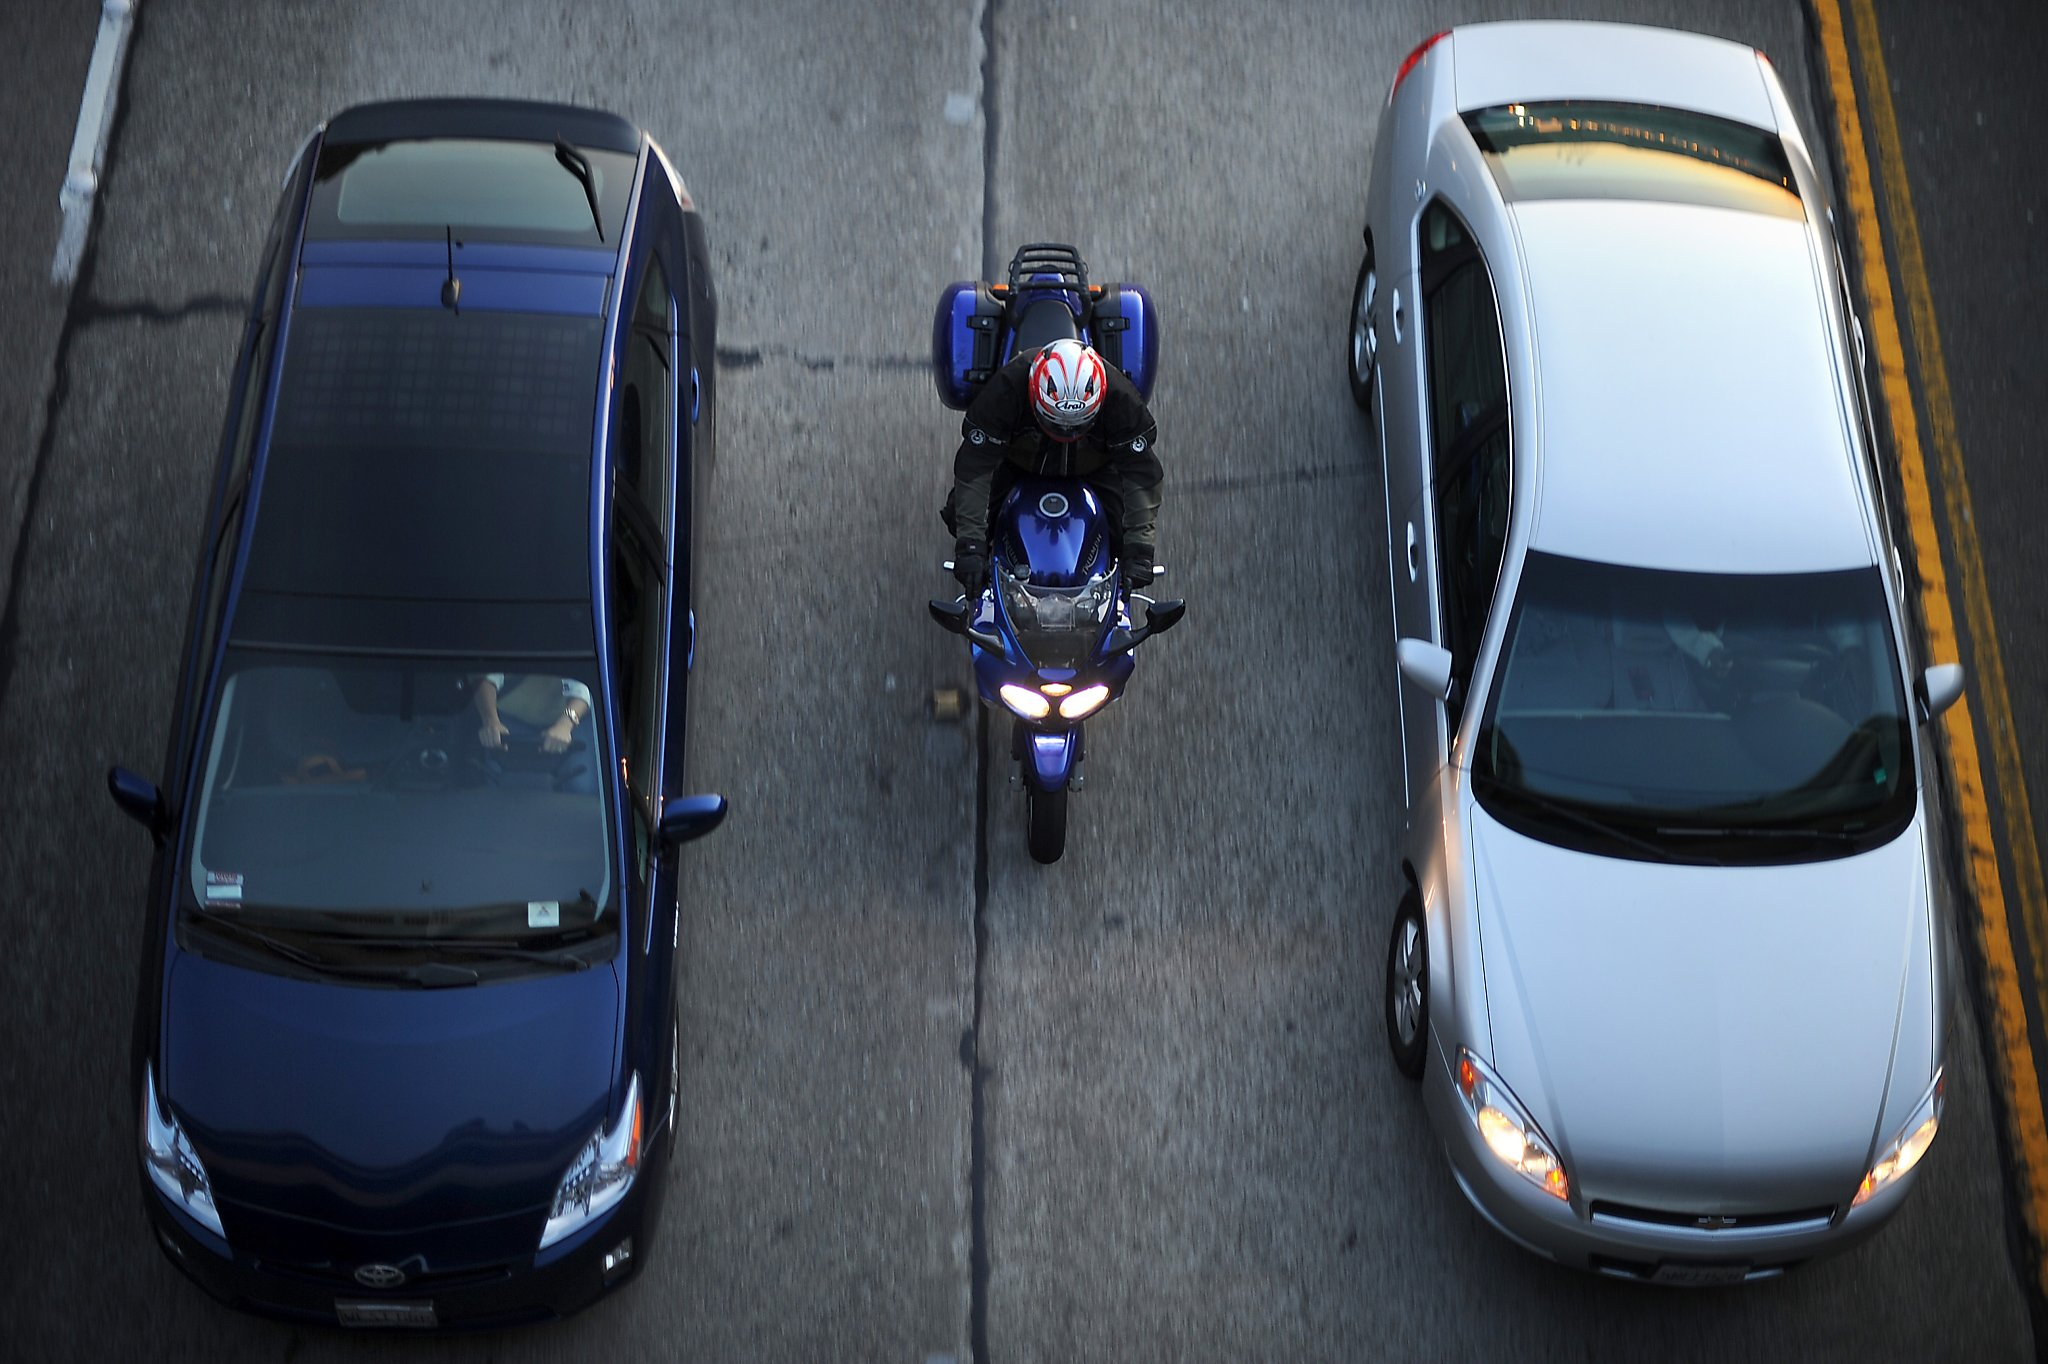 Lane-splitting benefits both drivers and motorcyclists - SFGate